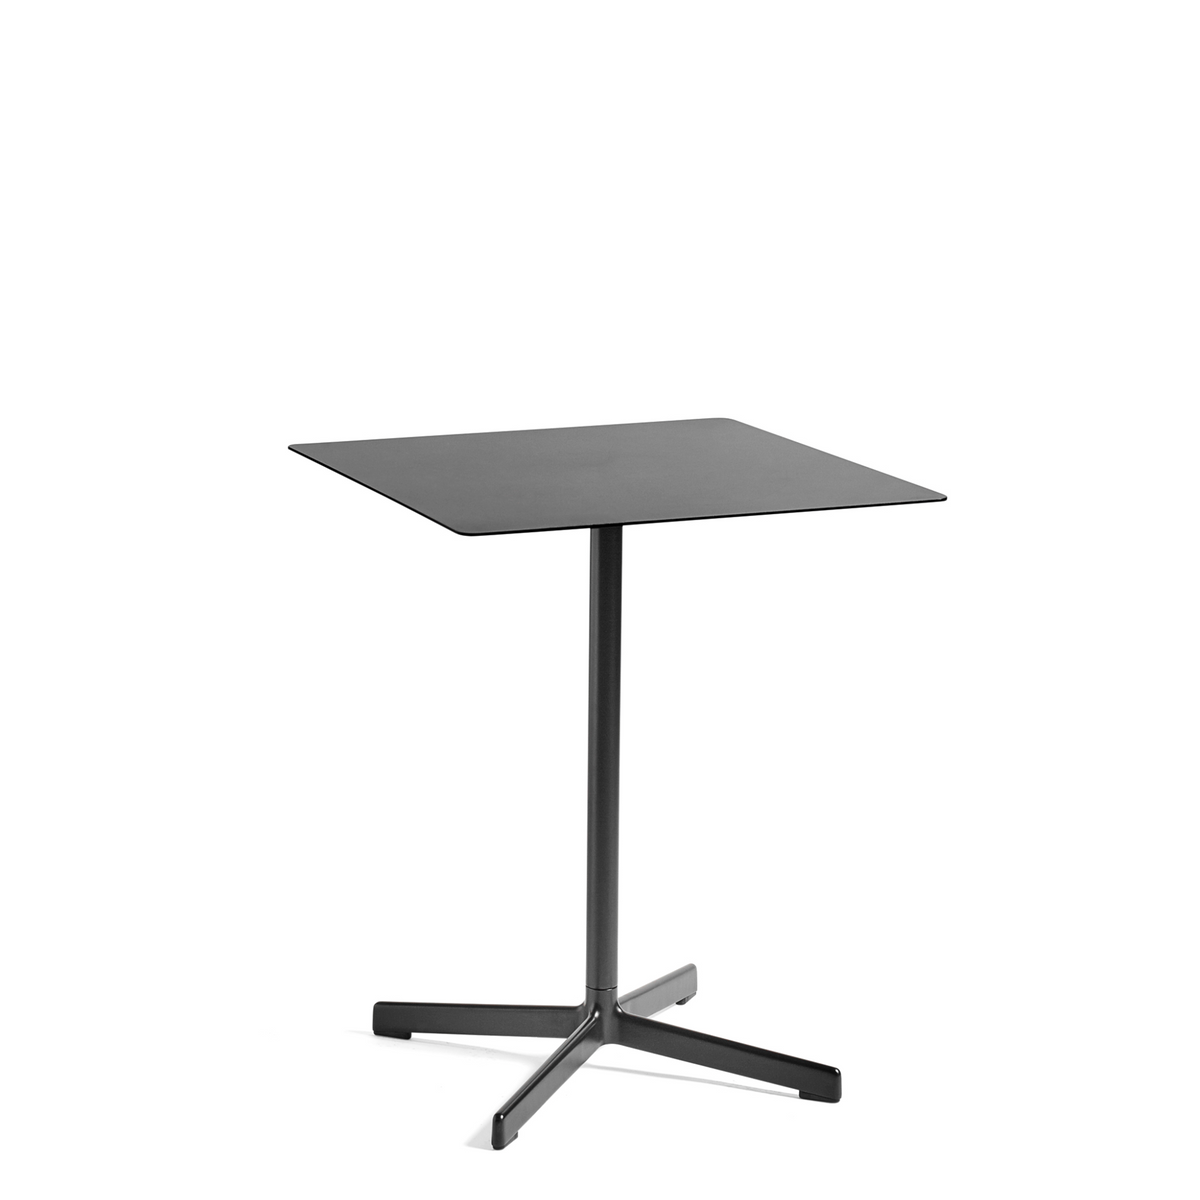 HAY Outdoor Neu Table Anthracite